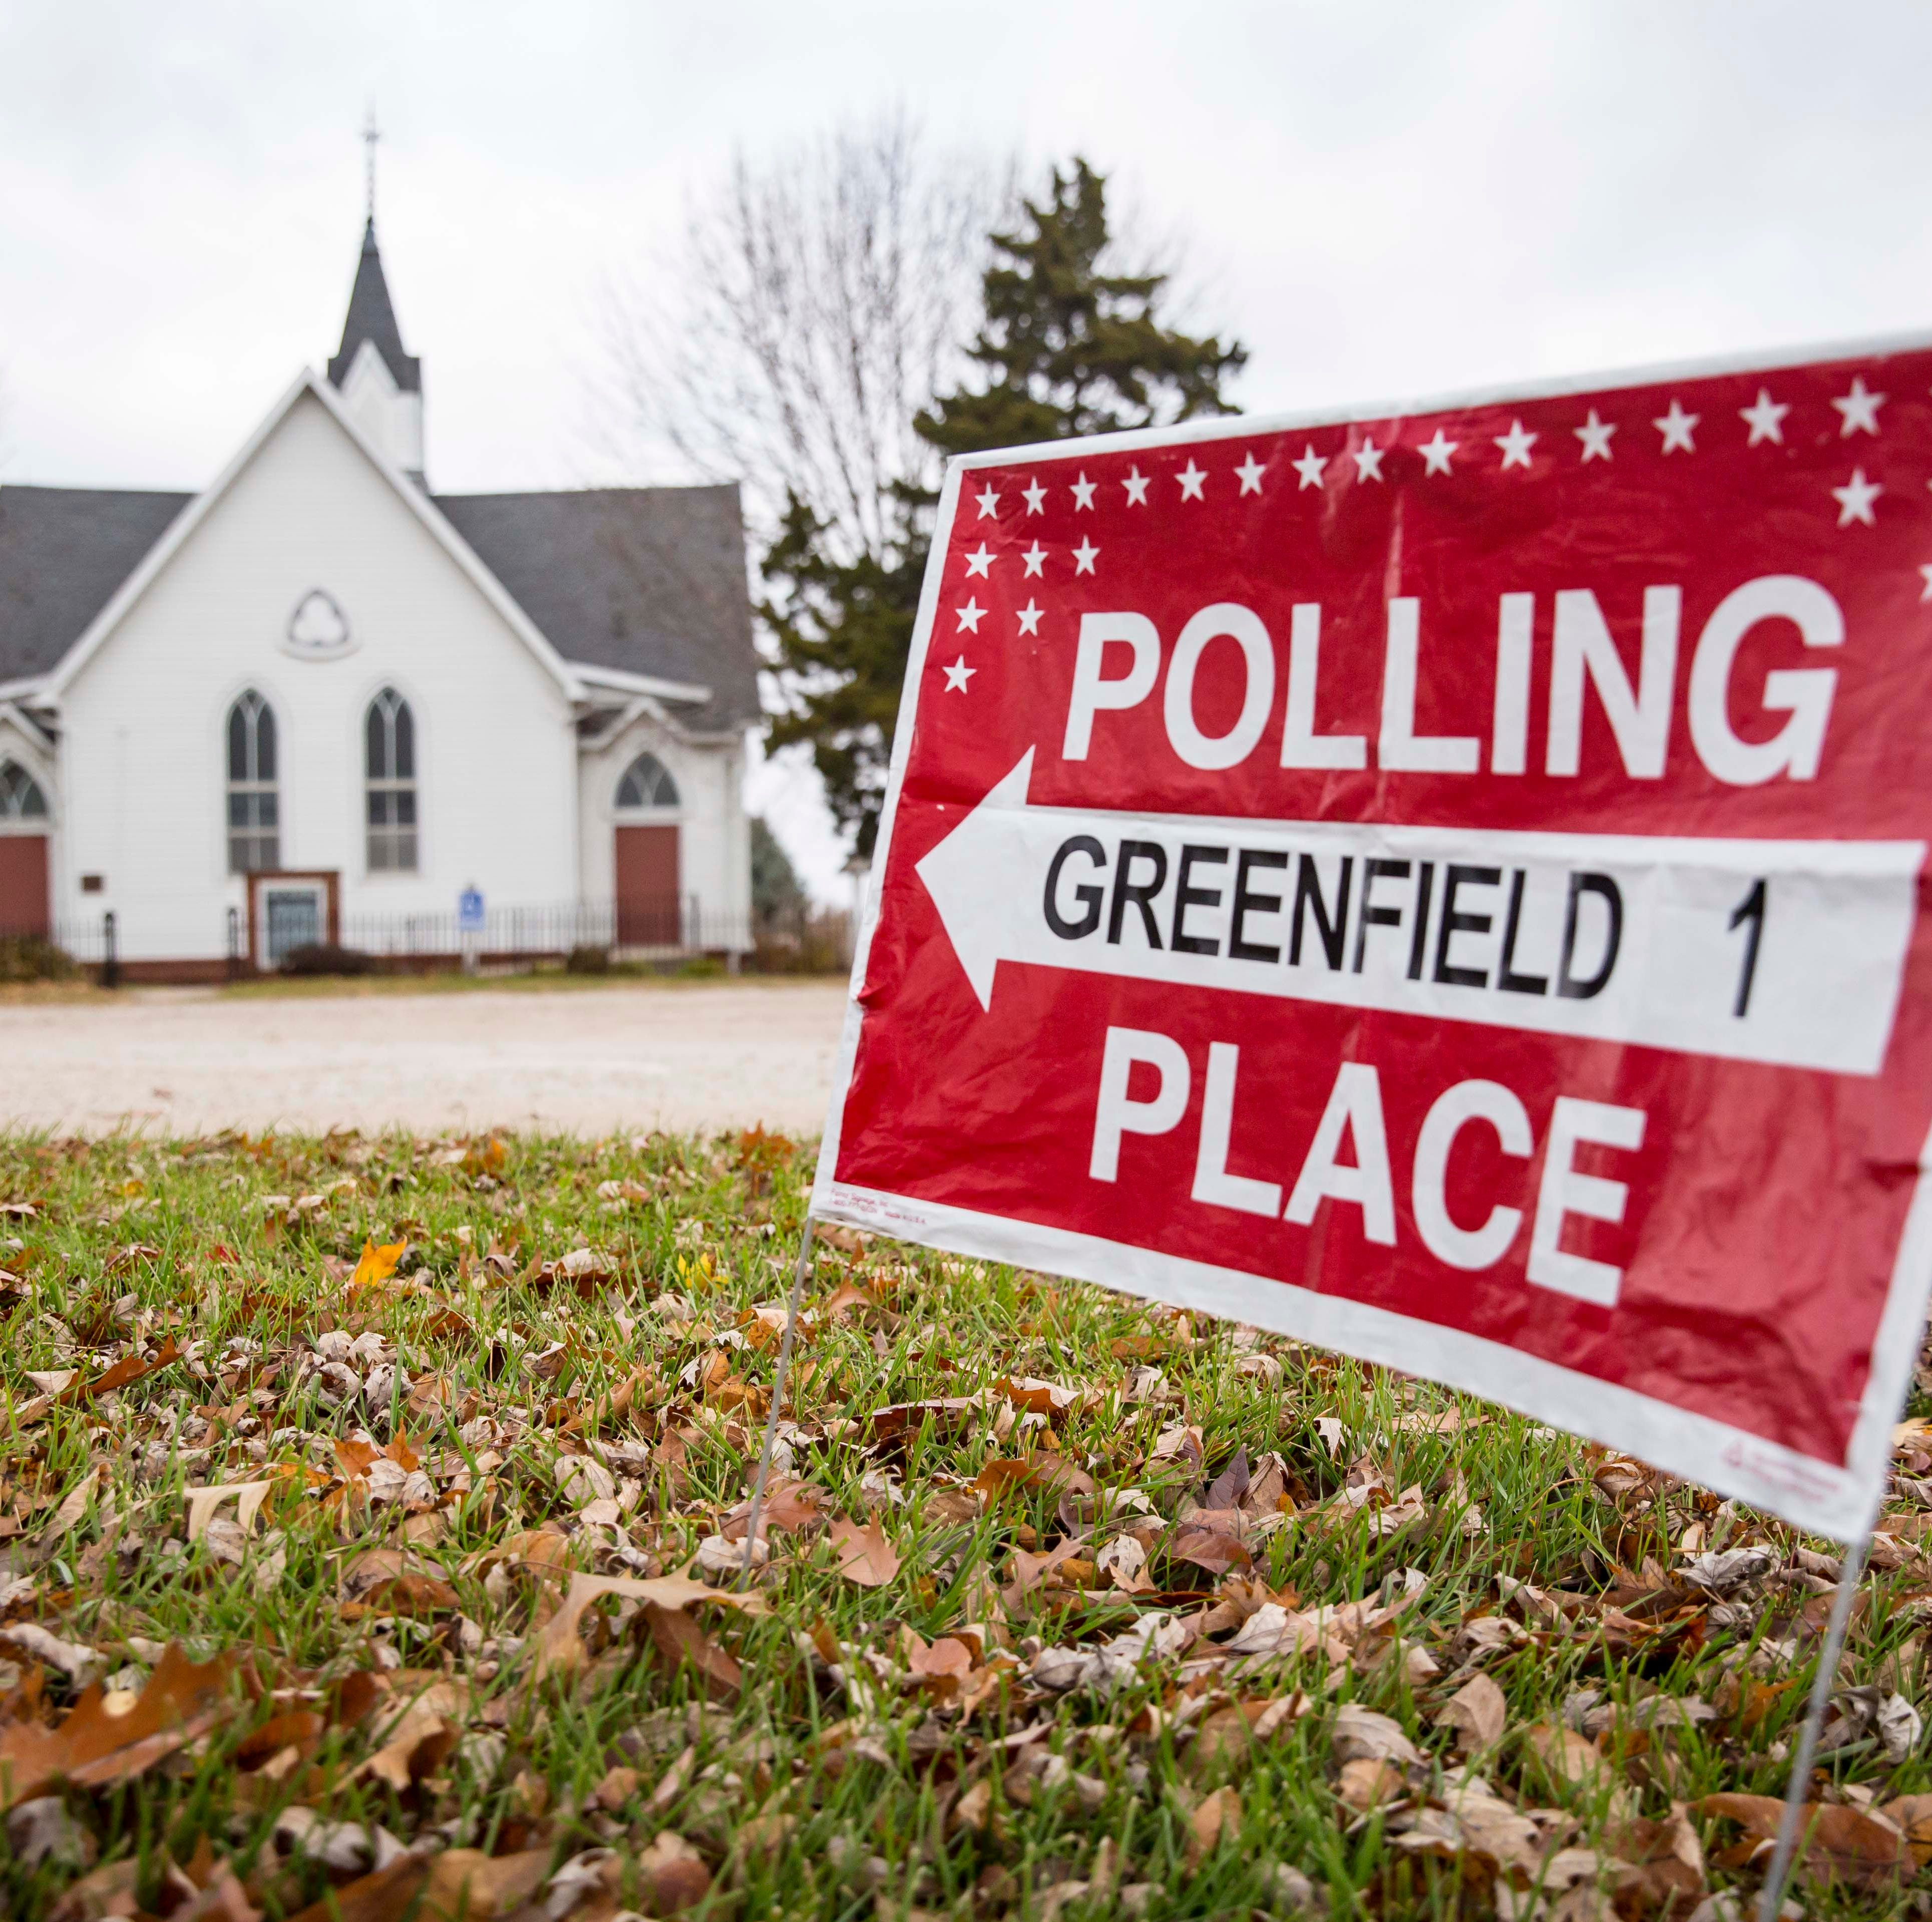 Democrats, don't fall for the false choice of pursuing urban versus rural voters